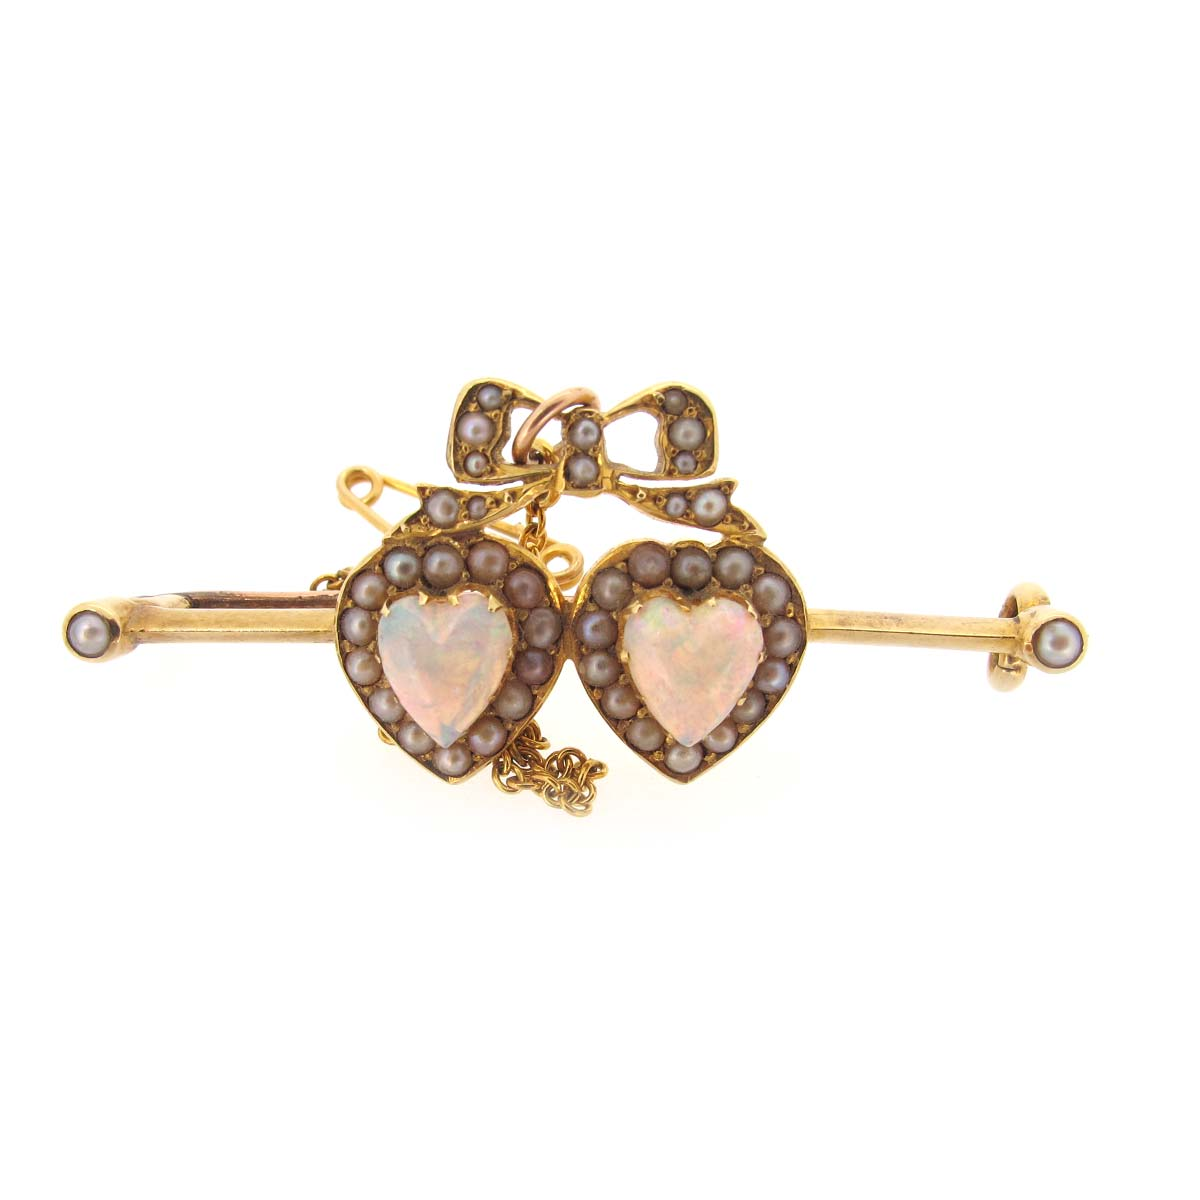 Antique opal & pearl heart brooch